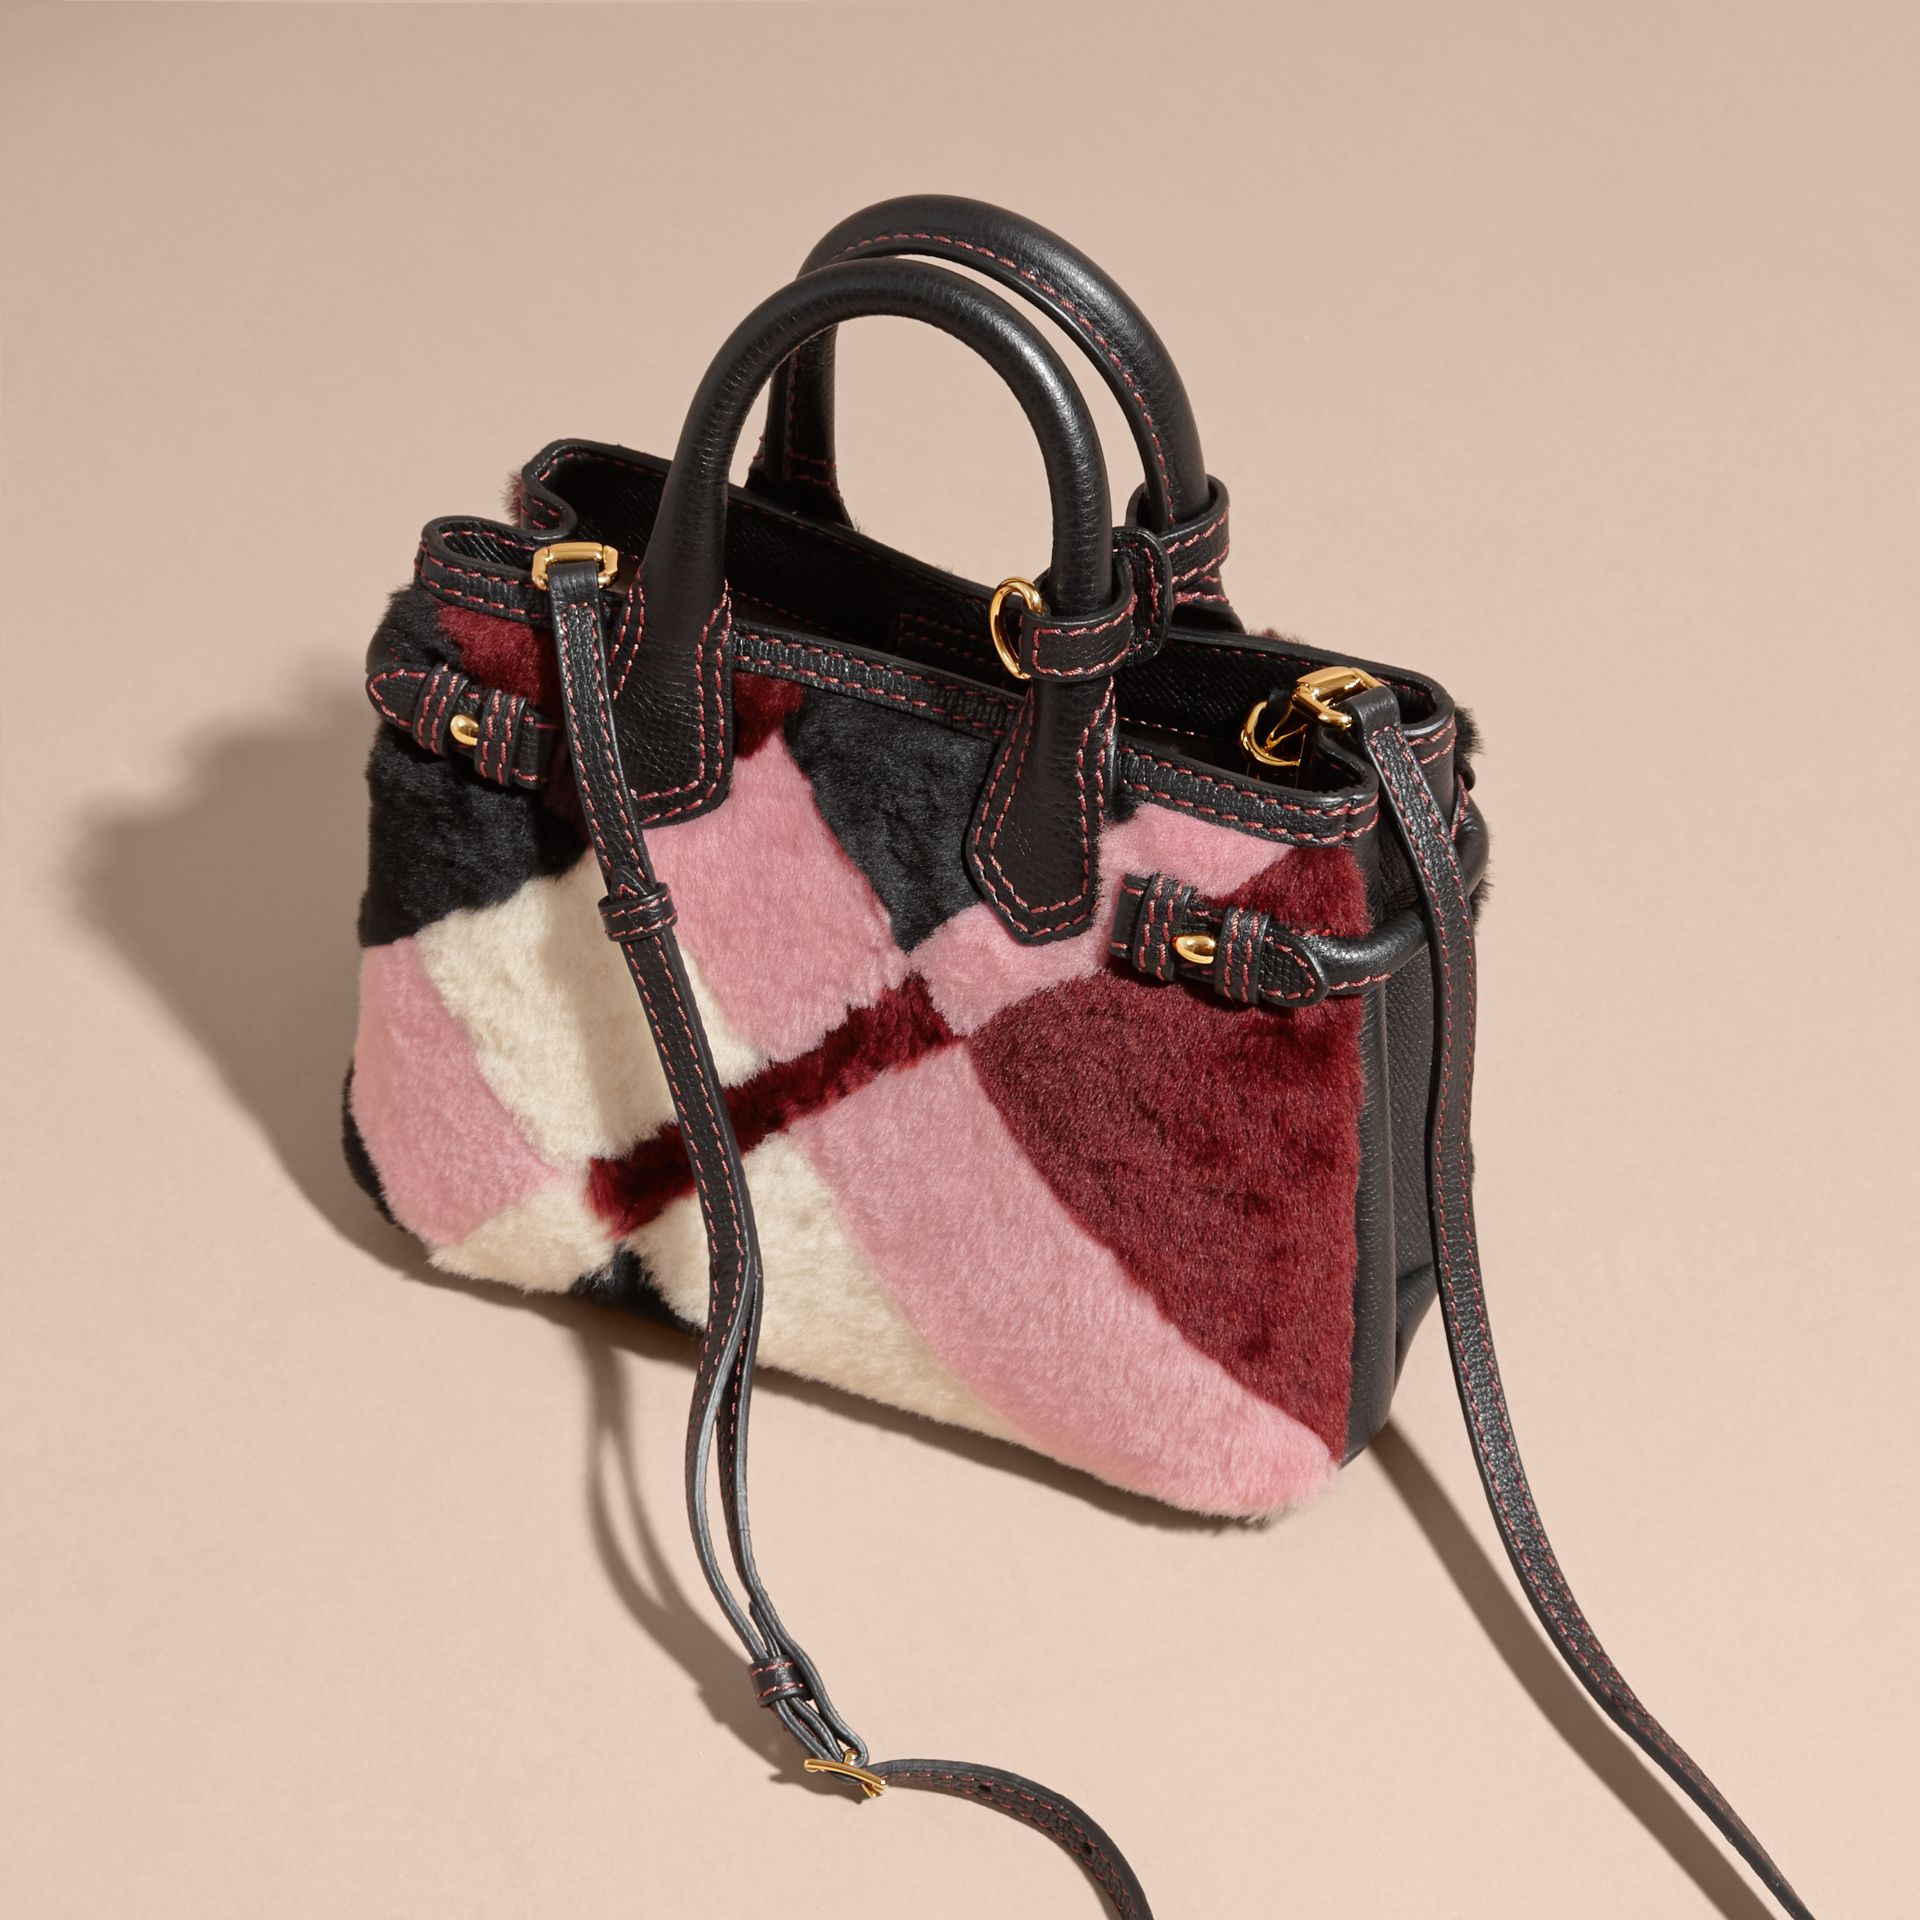 Borsa The Baby Banner in pelle con motivo tartan in patchwork di shearling (Rosa) - Donna | Burberry - immagine della galleria 7